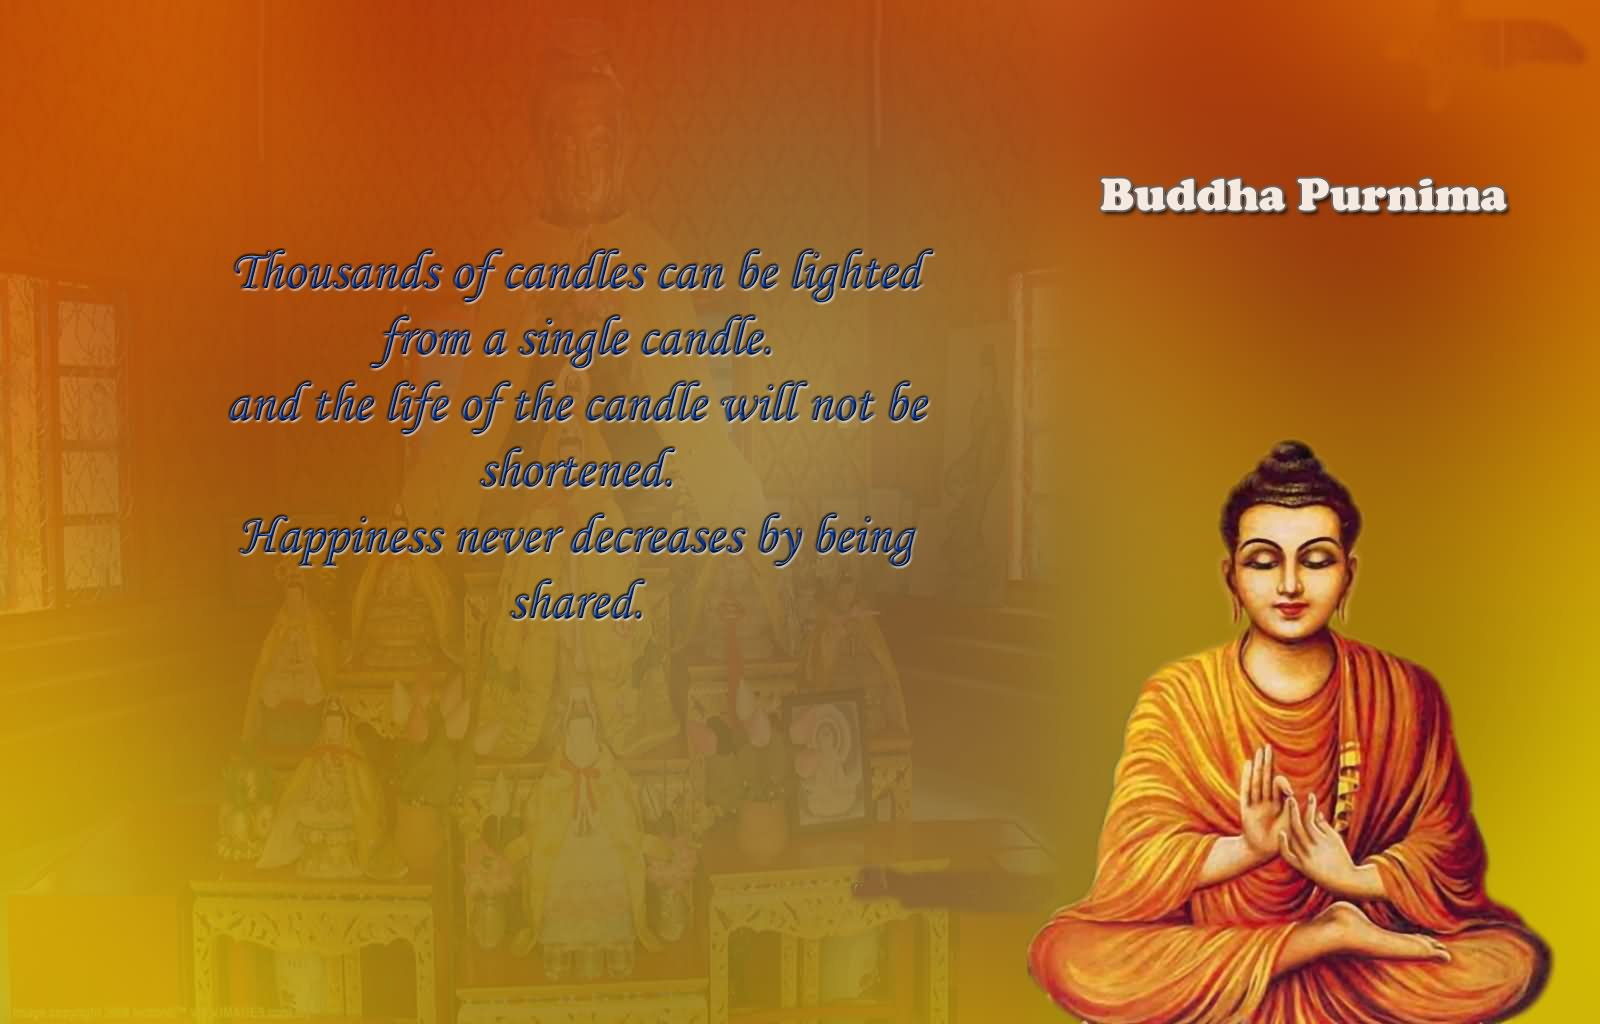 30 most beautiful buddha purnima wish pictures and images buddha purnima wishes m4hsunfo